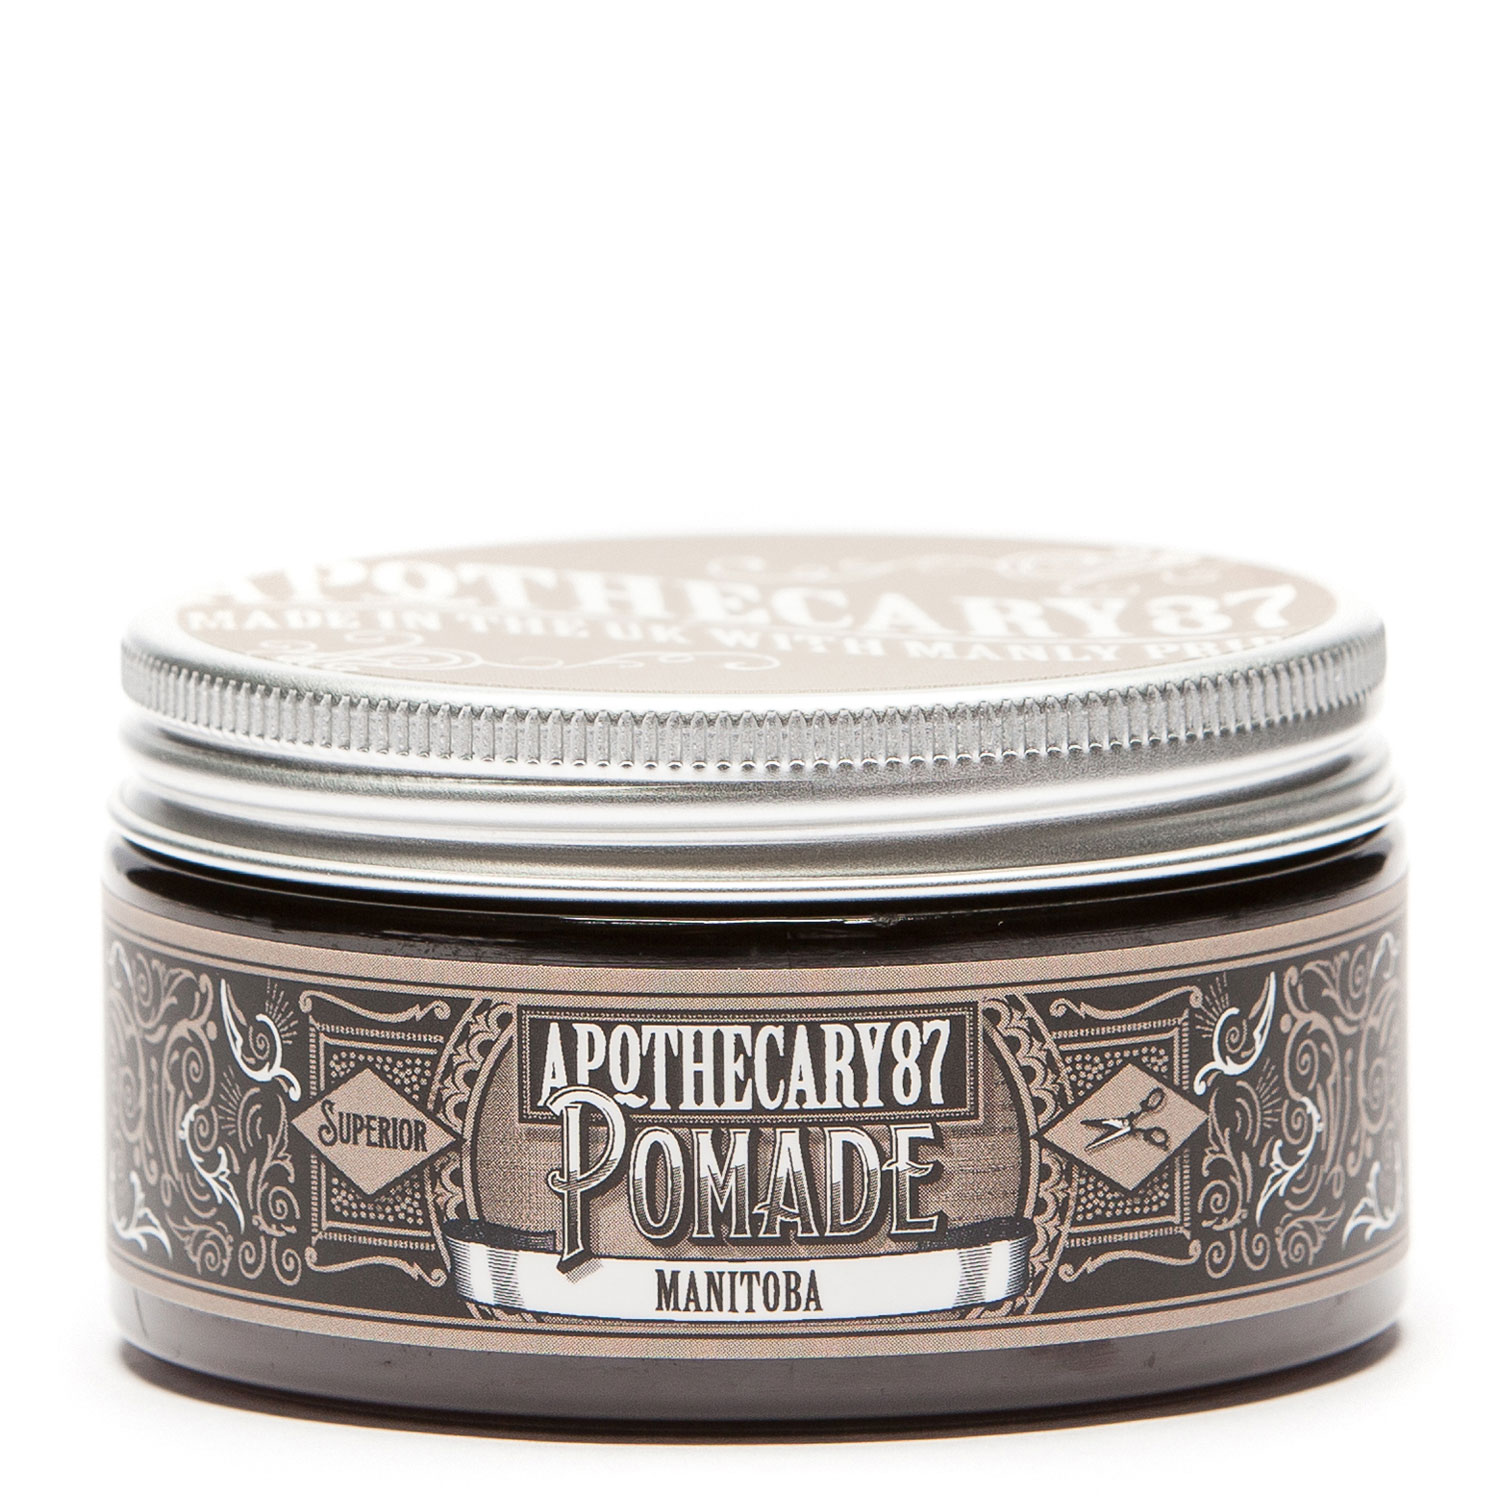 Apothecary87 Grooming - Pomade Manitoba Fragrance